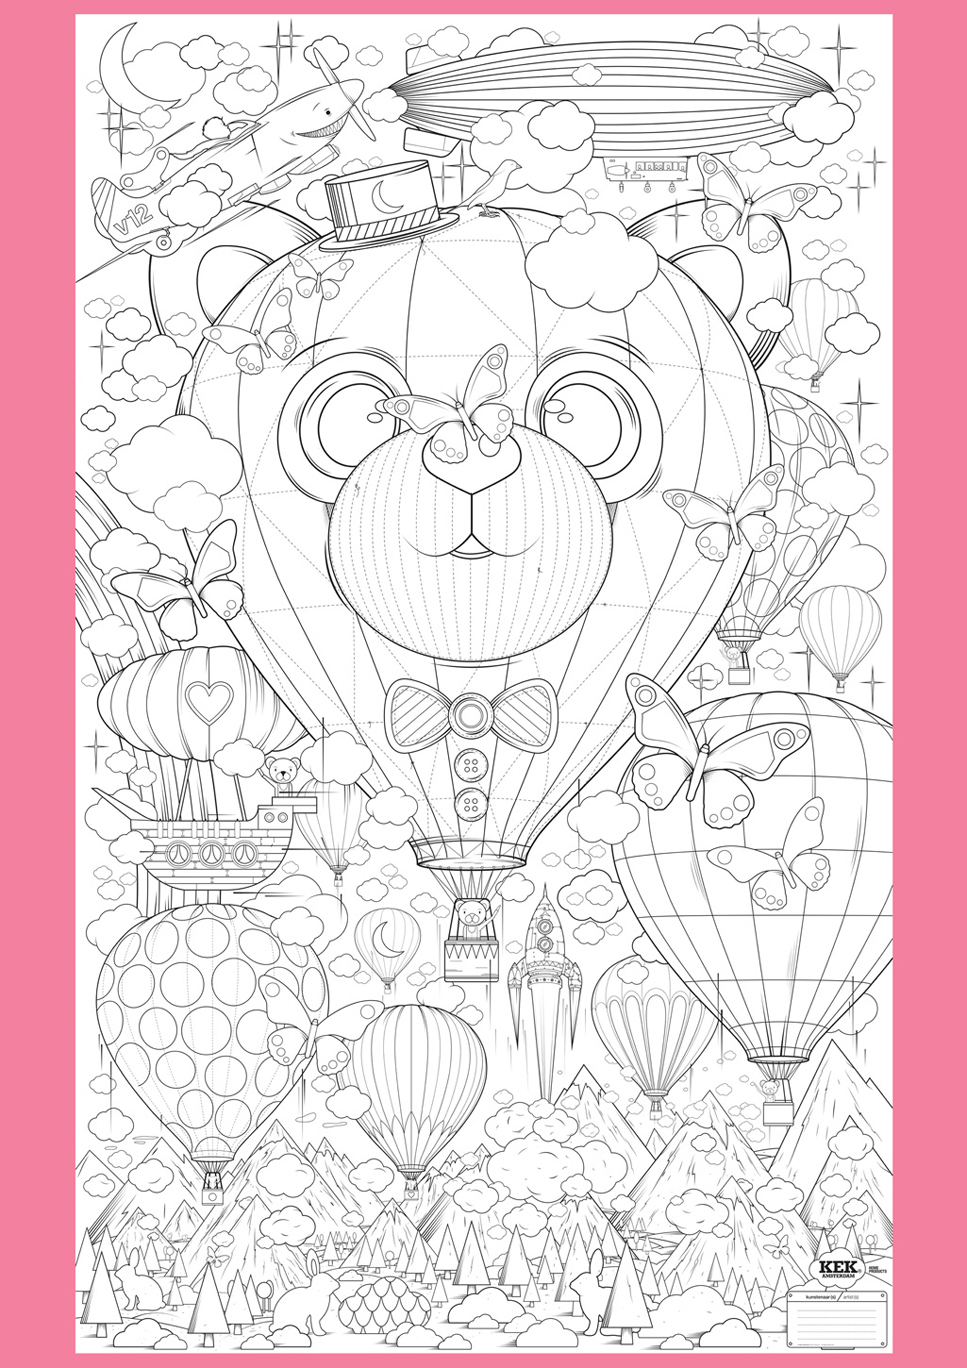 SuperGrößed Colouring Picture